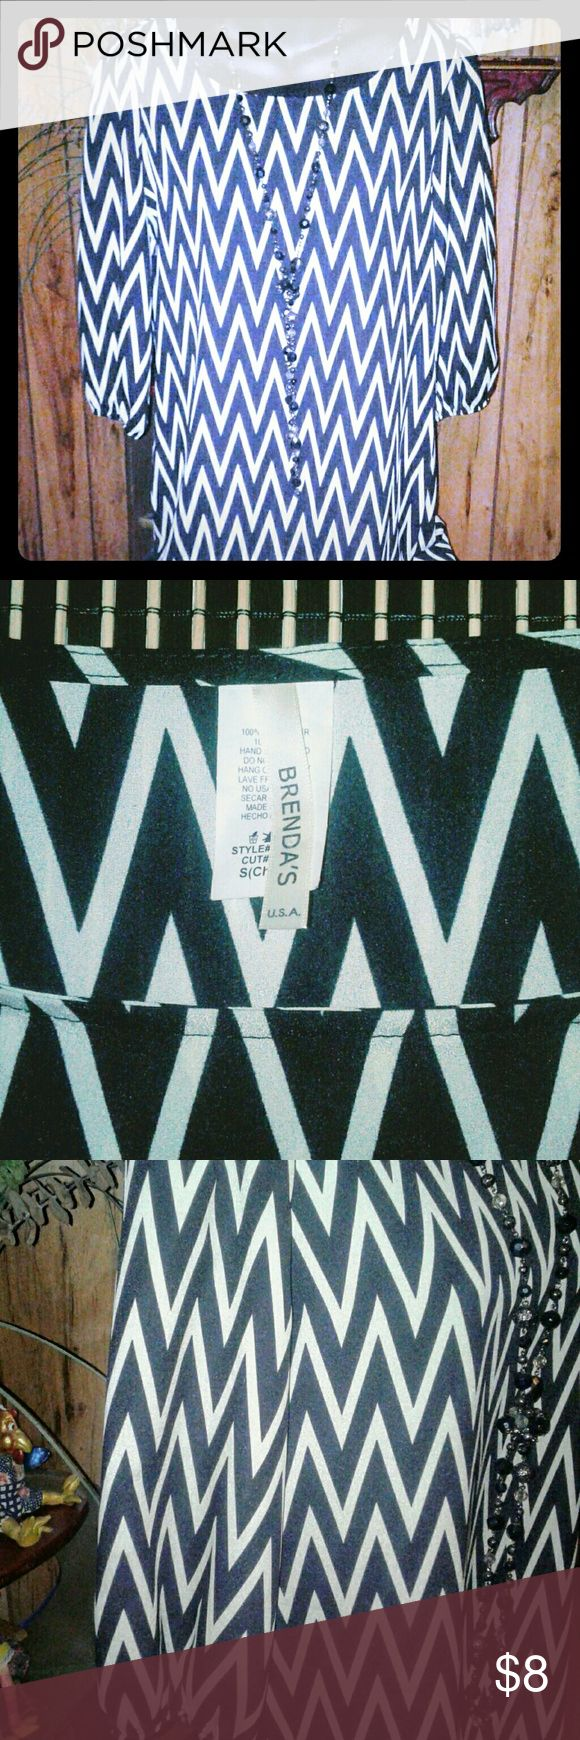 """Brenda's Chevron Print Dress Black & White, Size Small, measures 35"""" from top shoulder seam to bottom hem & 16"""" from shoulder to shoulder, has peasant sleeves, in excellent condition. Brenda's Dresses Mini"""